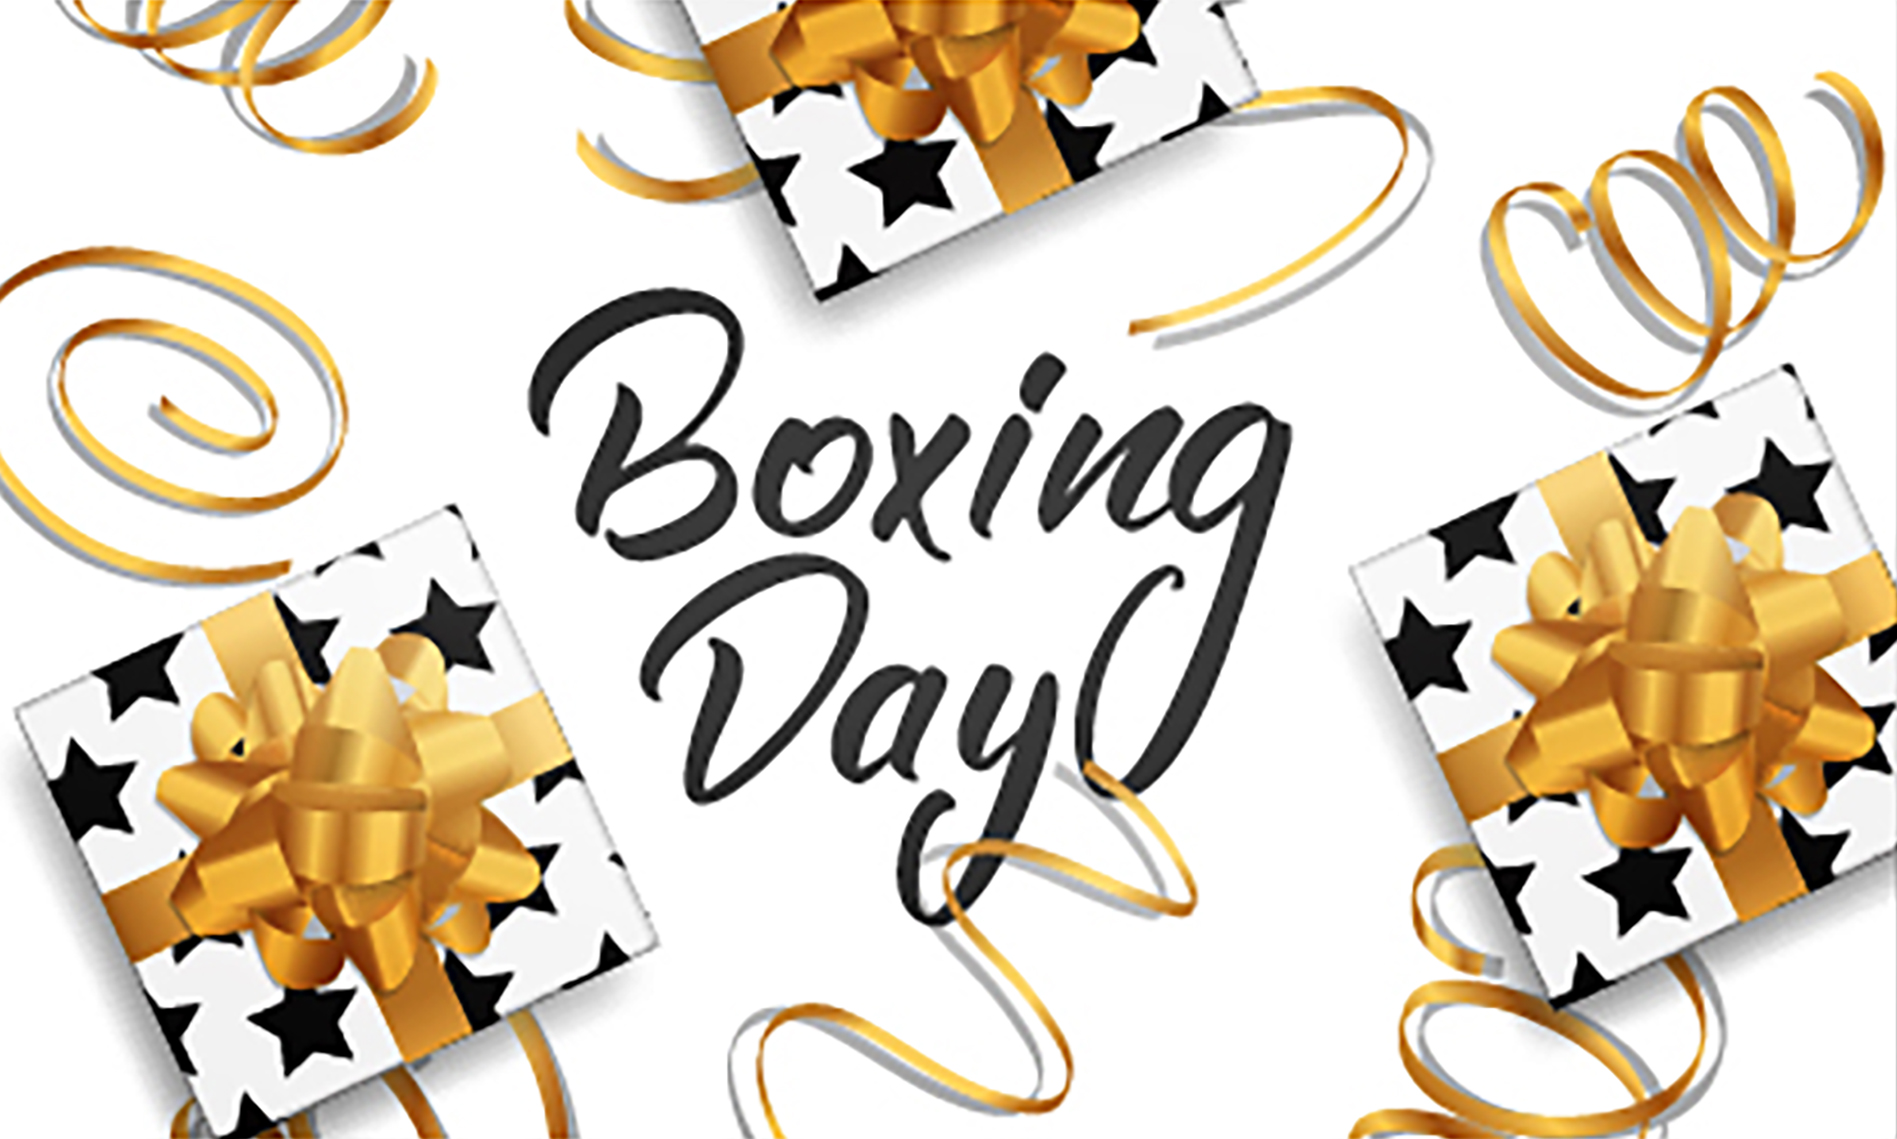 Boxing Day to Celebrate